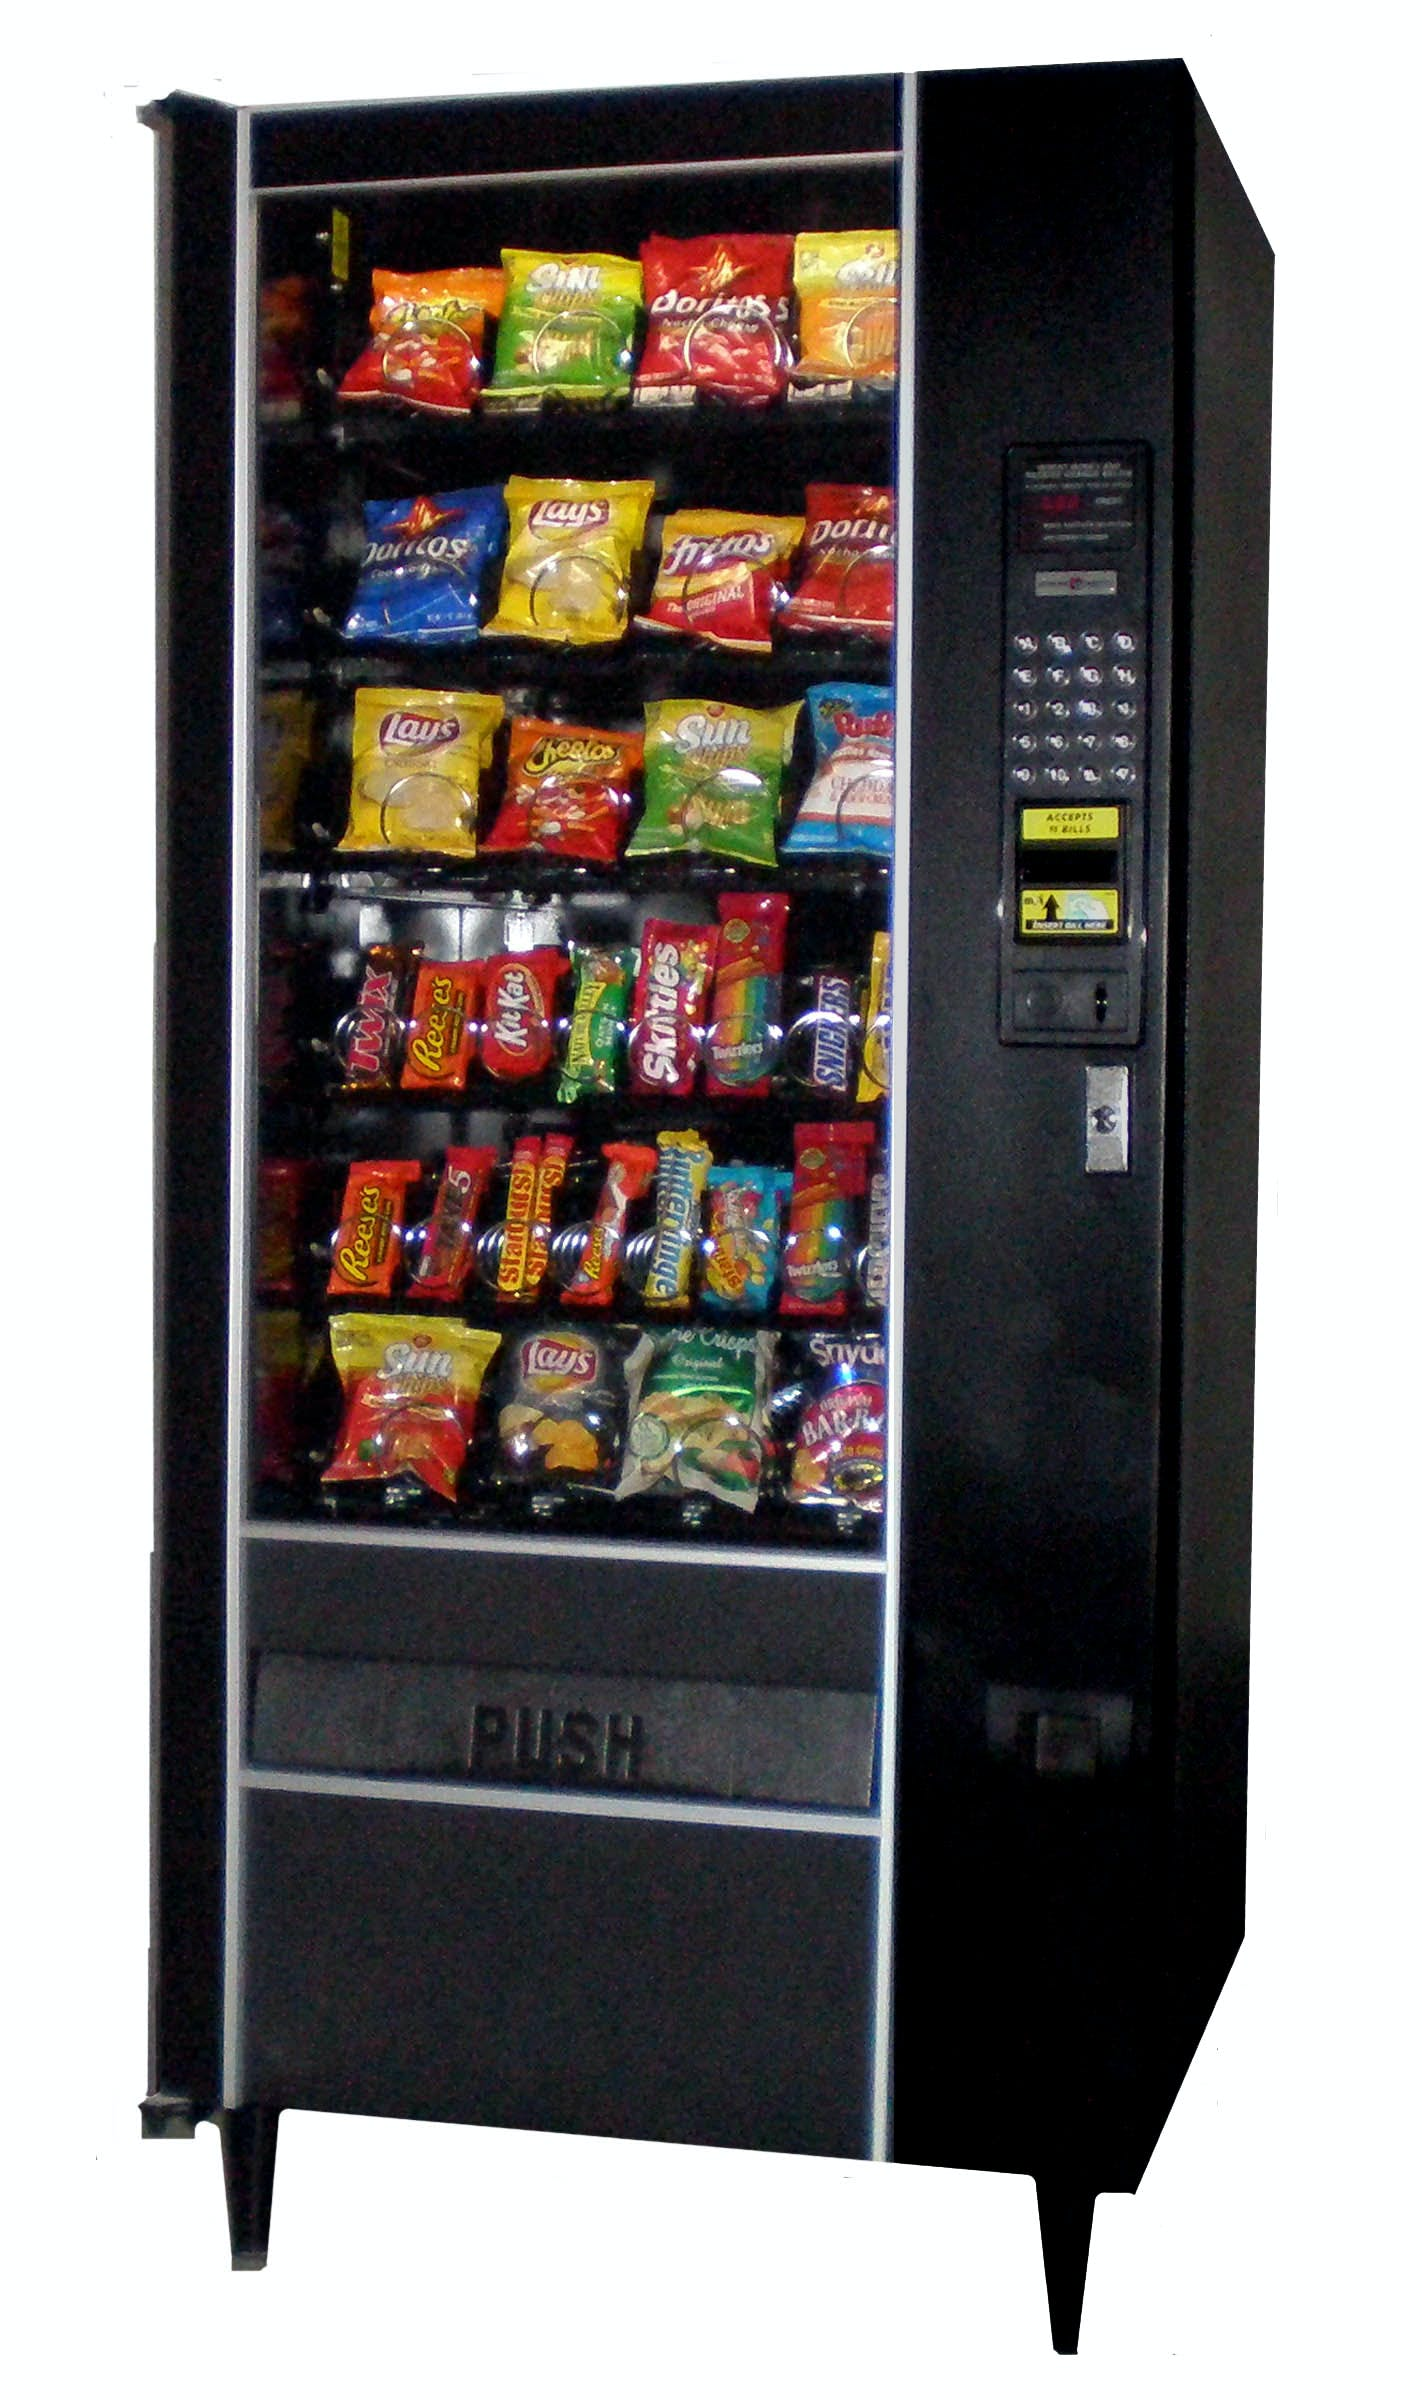 Automatic Products LCM2 snack machine Vending machine sold by Vending World